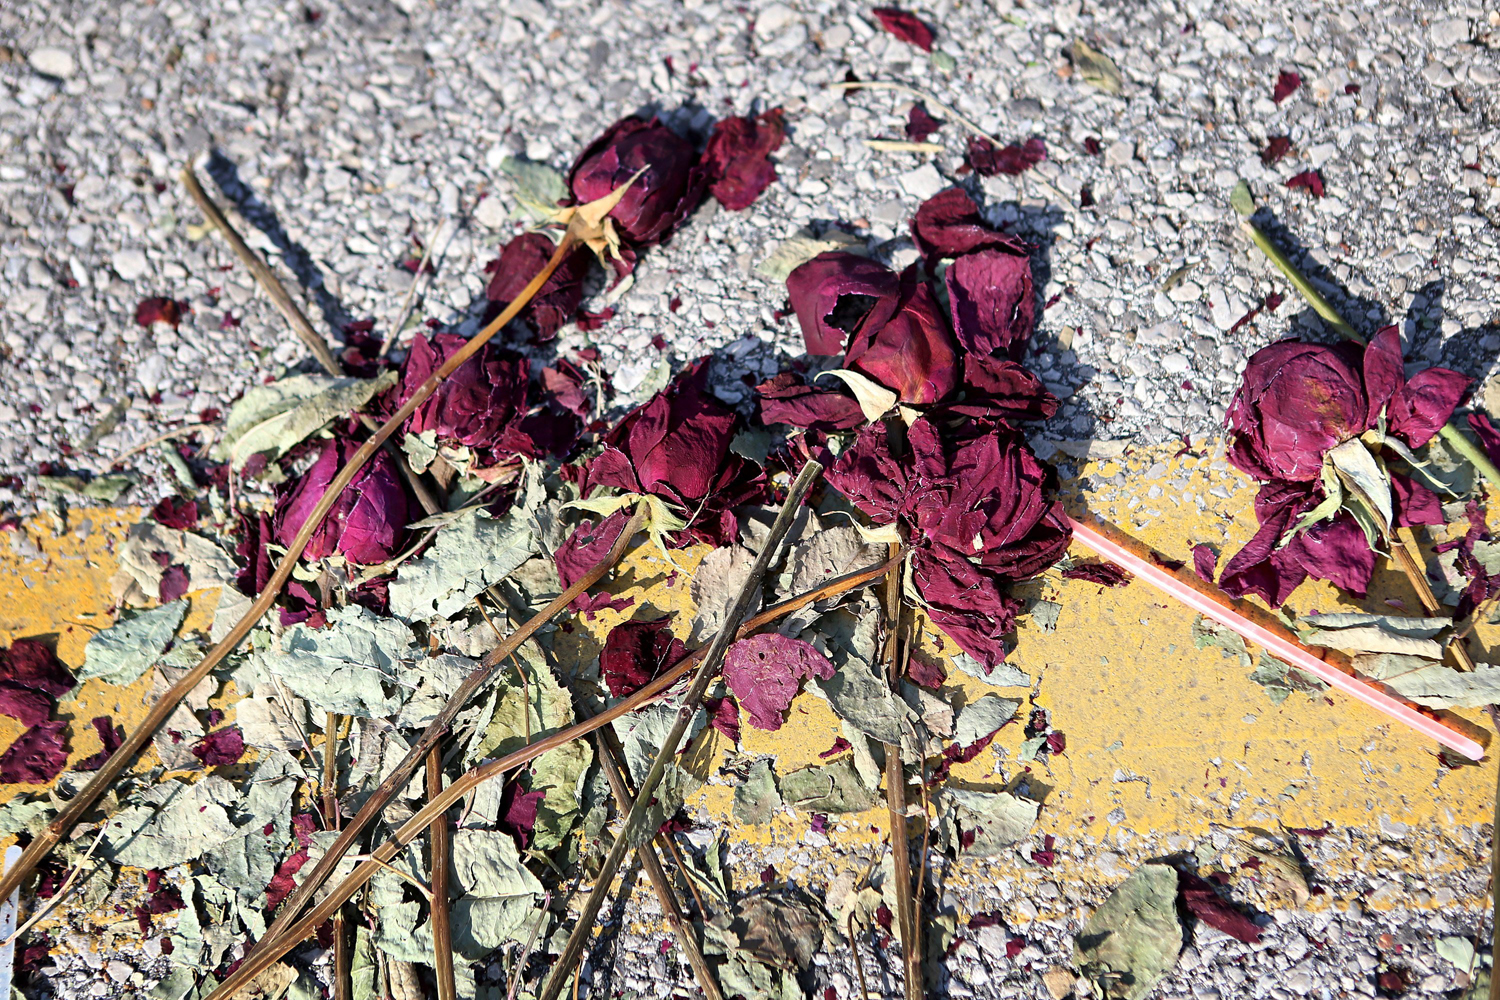 Aug. 23, 2014. The hot summer sun took it's toll on a row of roses laid on Canfield Drive leading to the site where 18-year-old Michael Brown was fatally shot by police on August 9, 2014, in Ferguson.